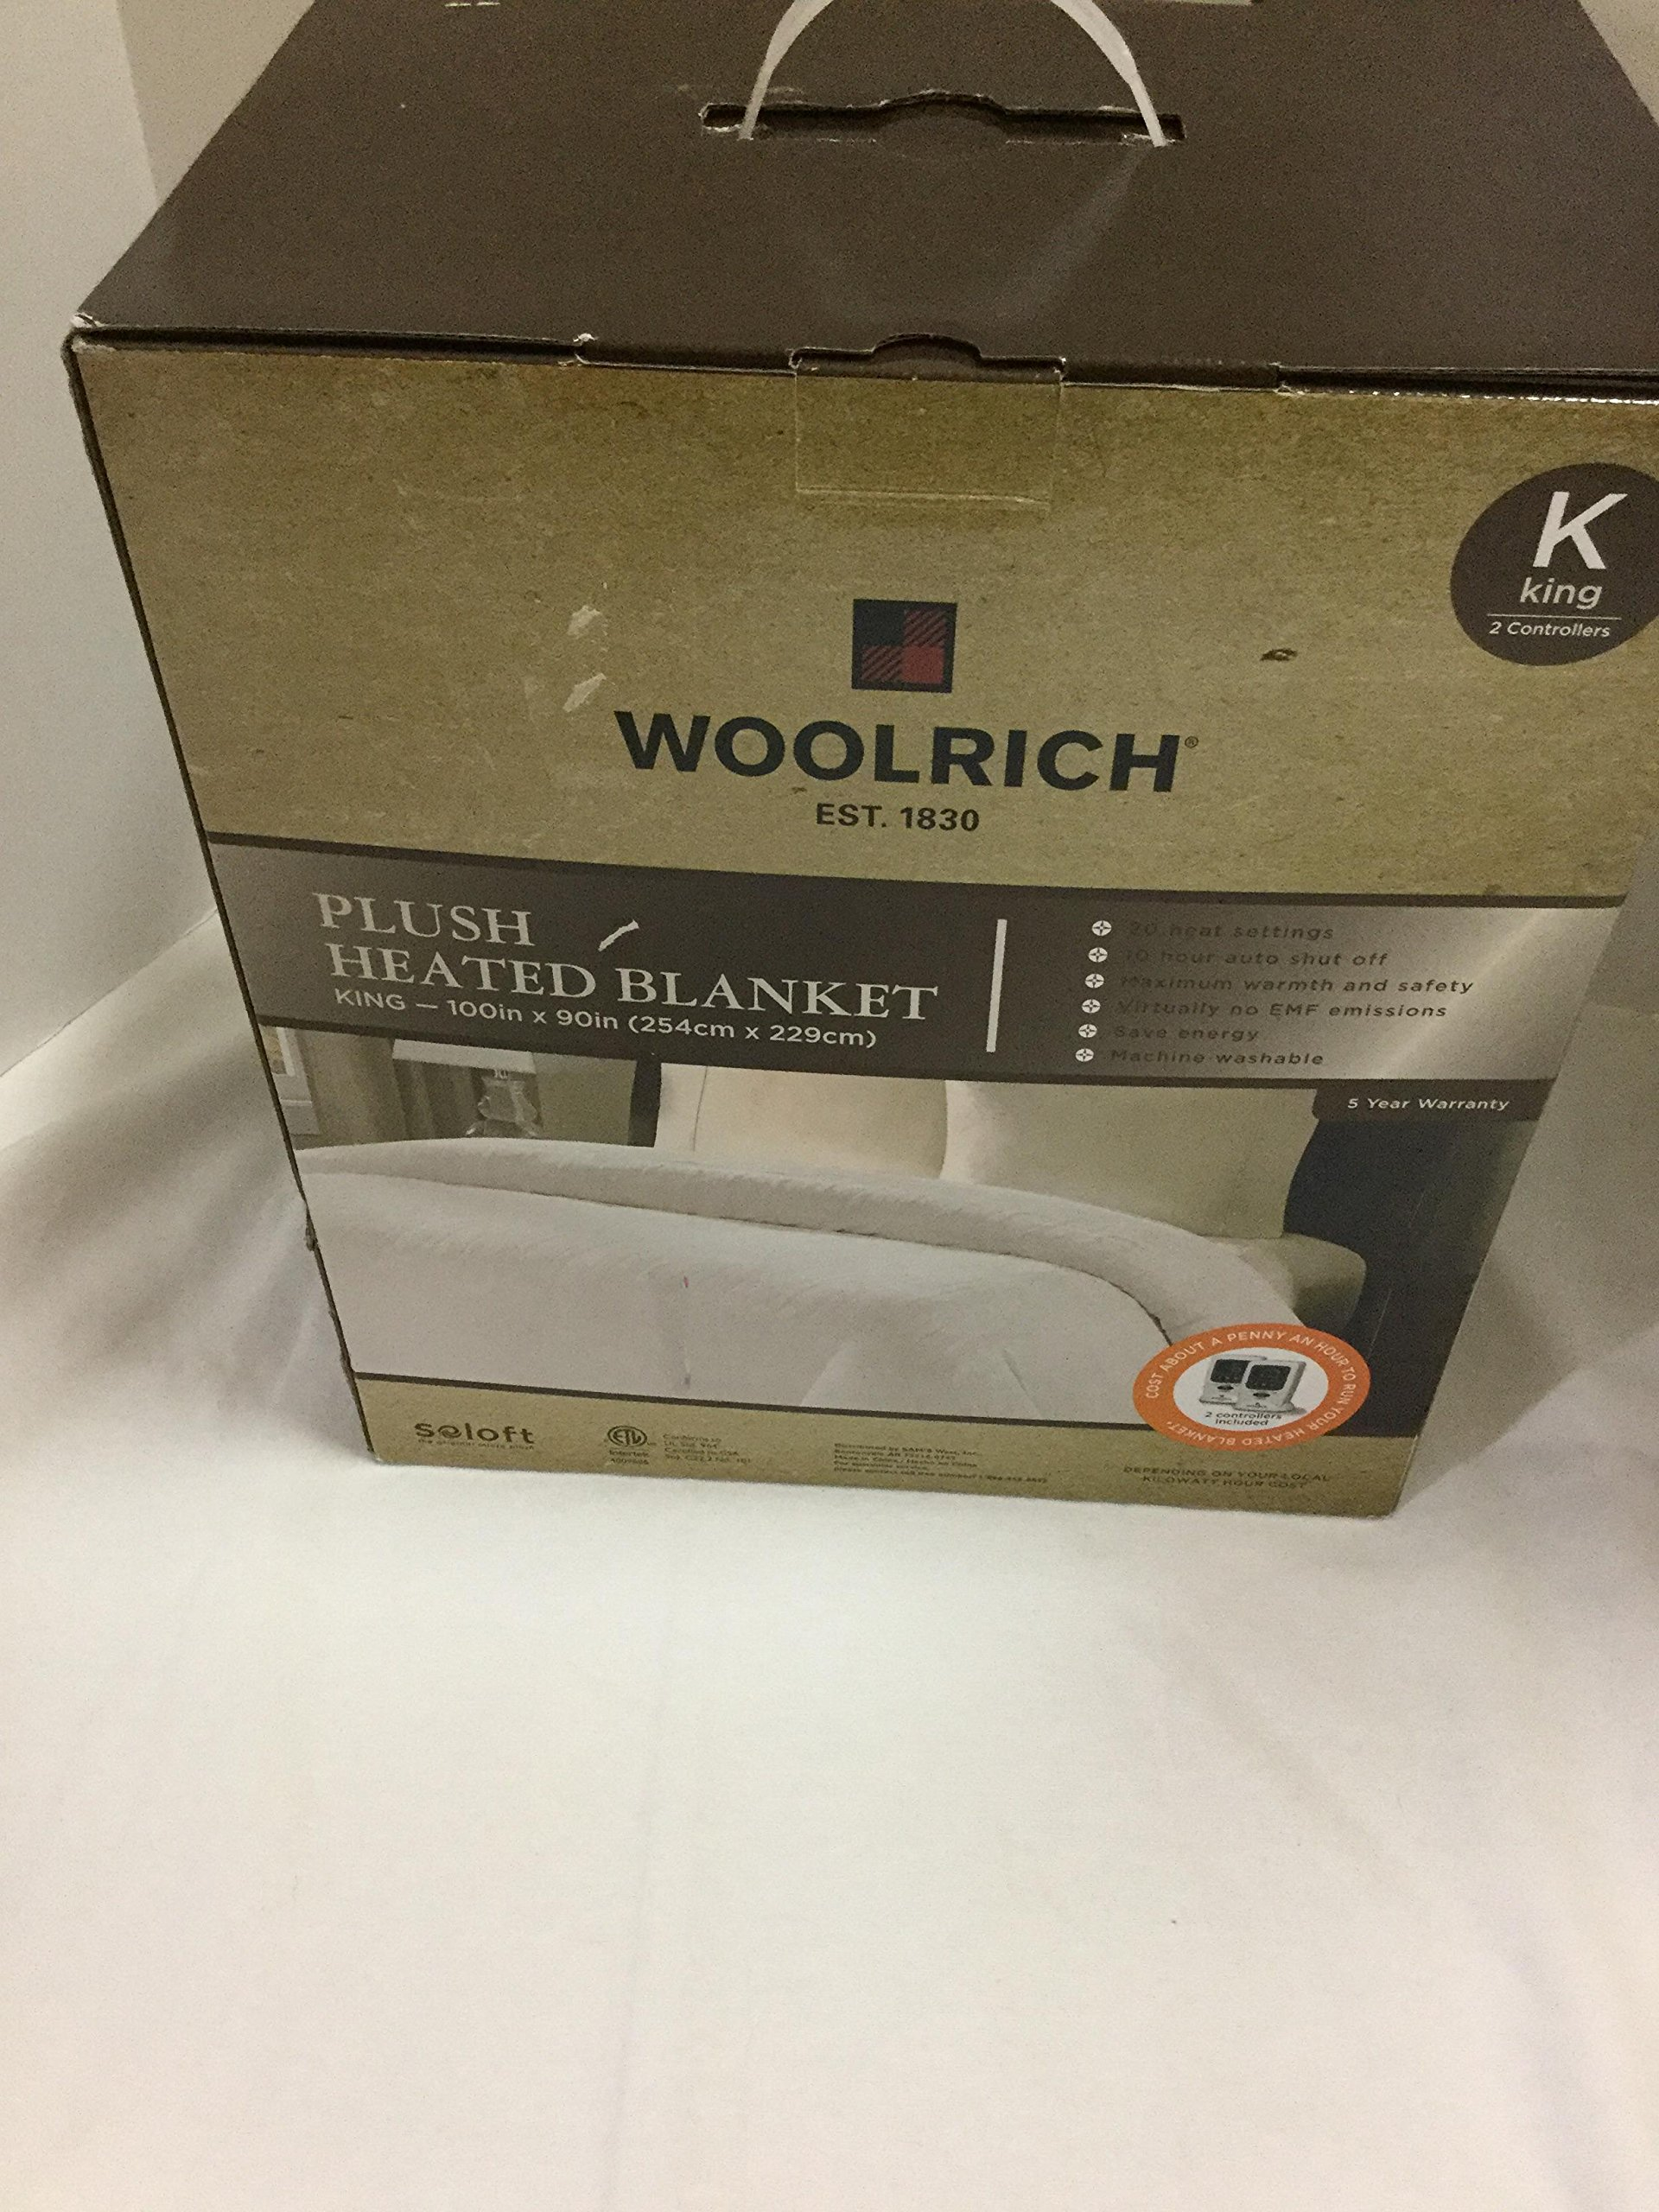 Woolrich Plush Heated Blanket KING Cream / Ivory 2 Controllers